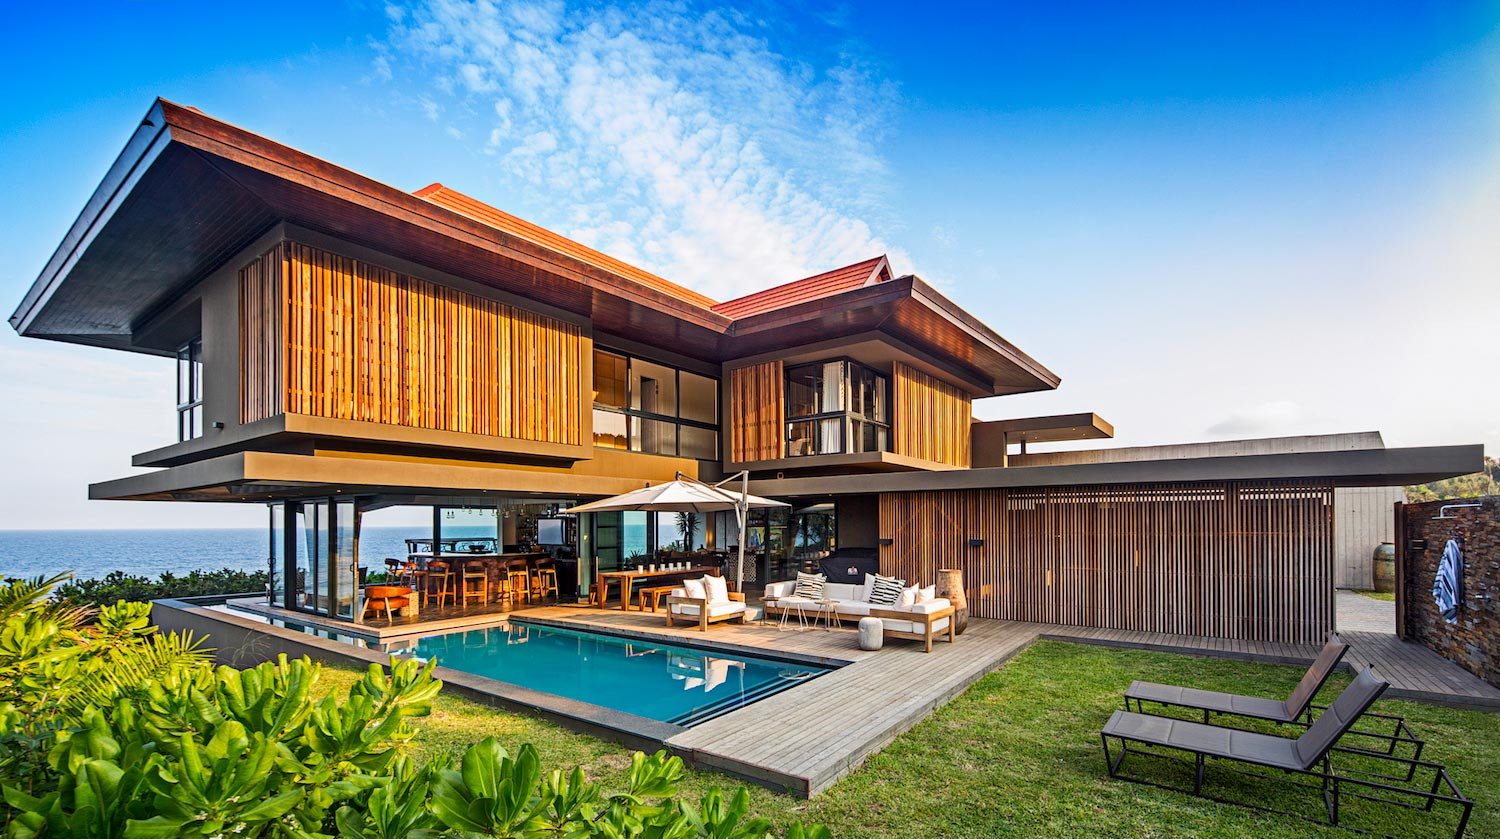 The Reserve House With A Wide Ocean Frontage Taking Full Advantage Of The Panoramic Beach And